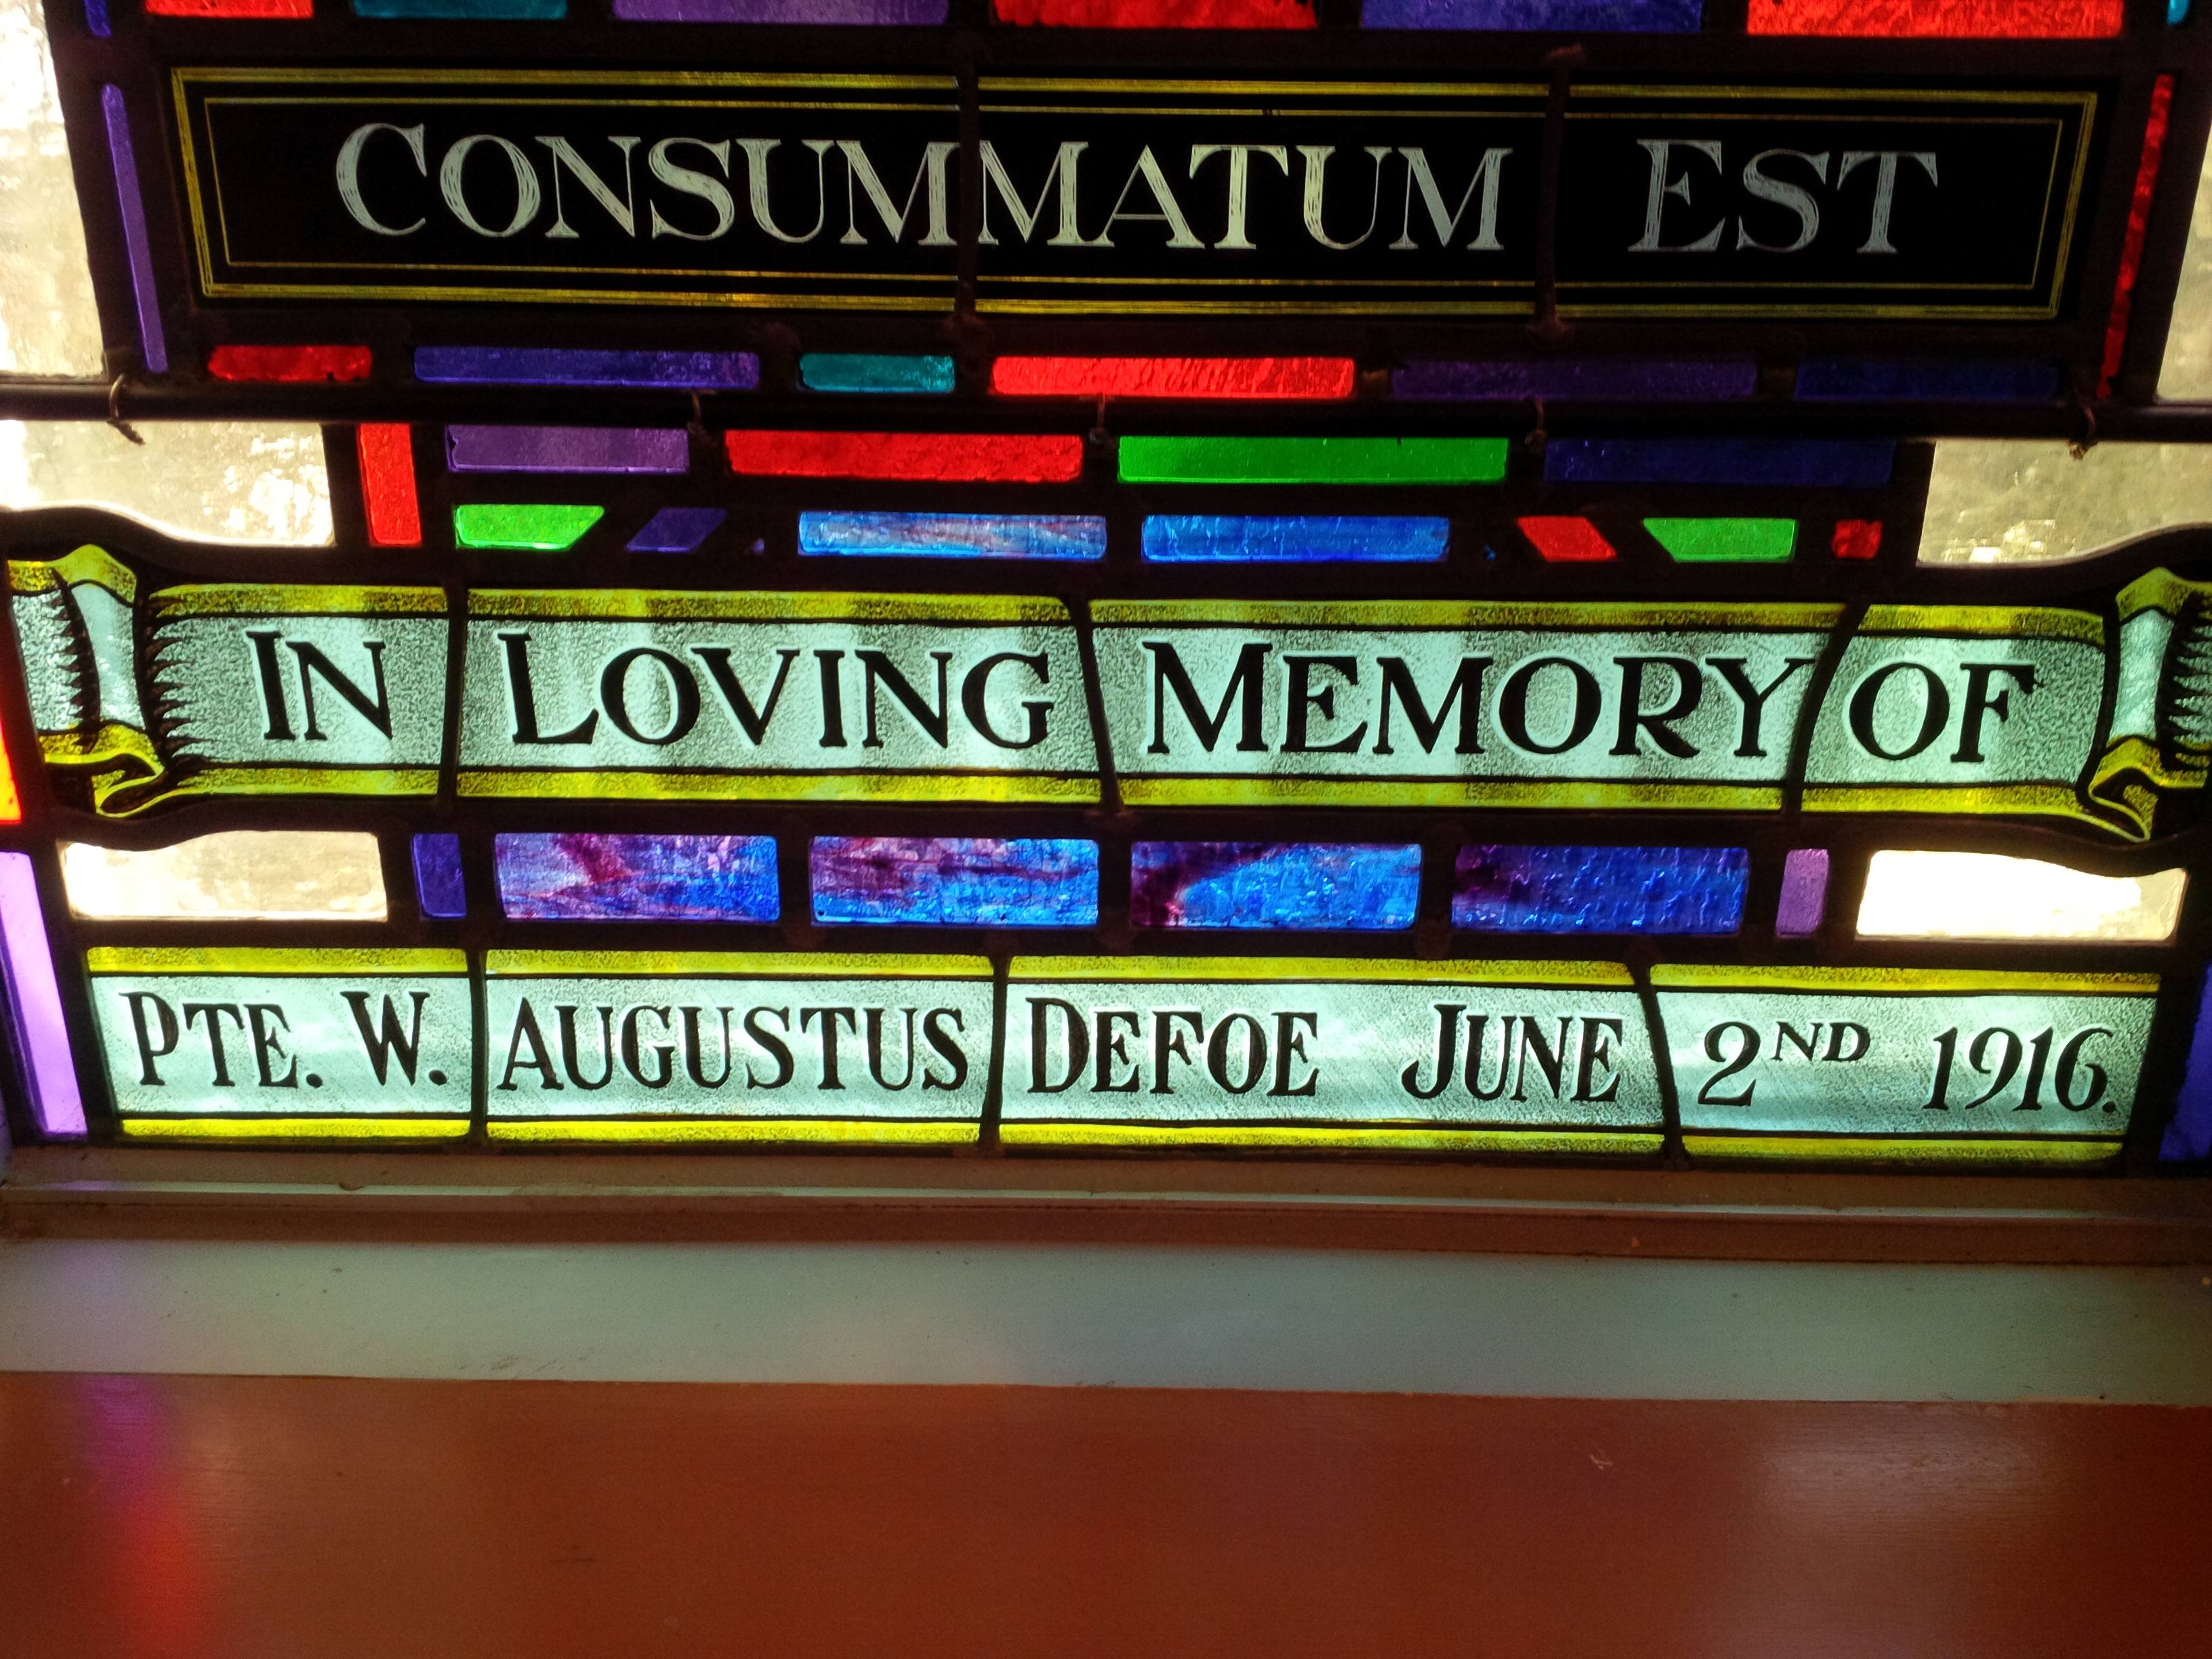 Memorial Stained Glass– Pvt. W.Augustus Defoe's name on stain glass window in Sts. Cyril and Methodius Roman Catholic Church in Mississauga, Ontario.  The stain glass was originally in St. Basil's Church in Toronto.